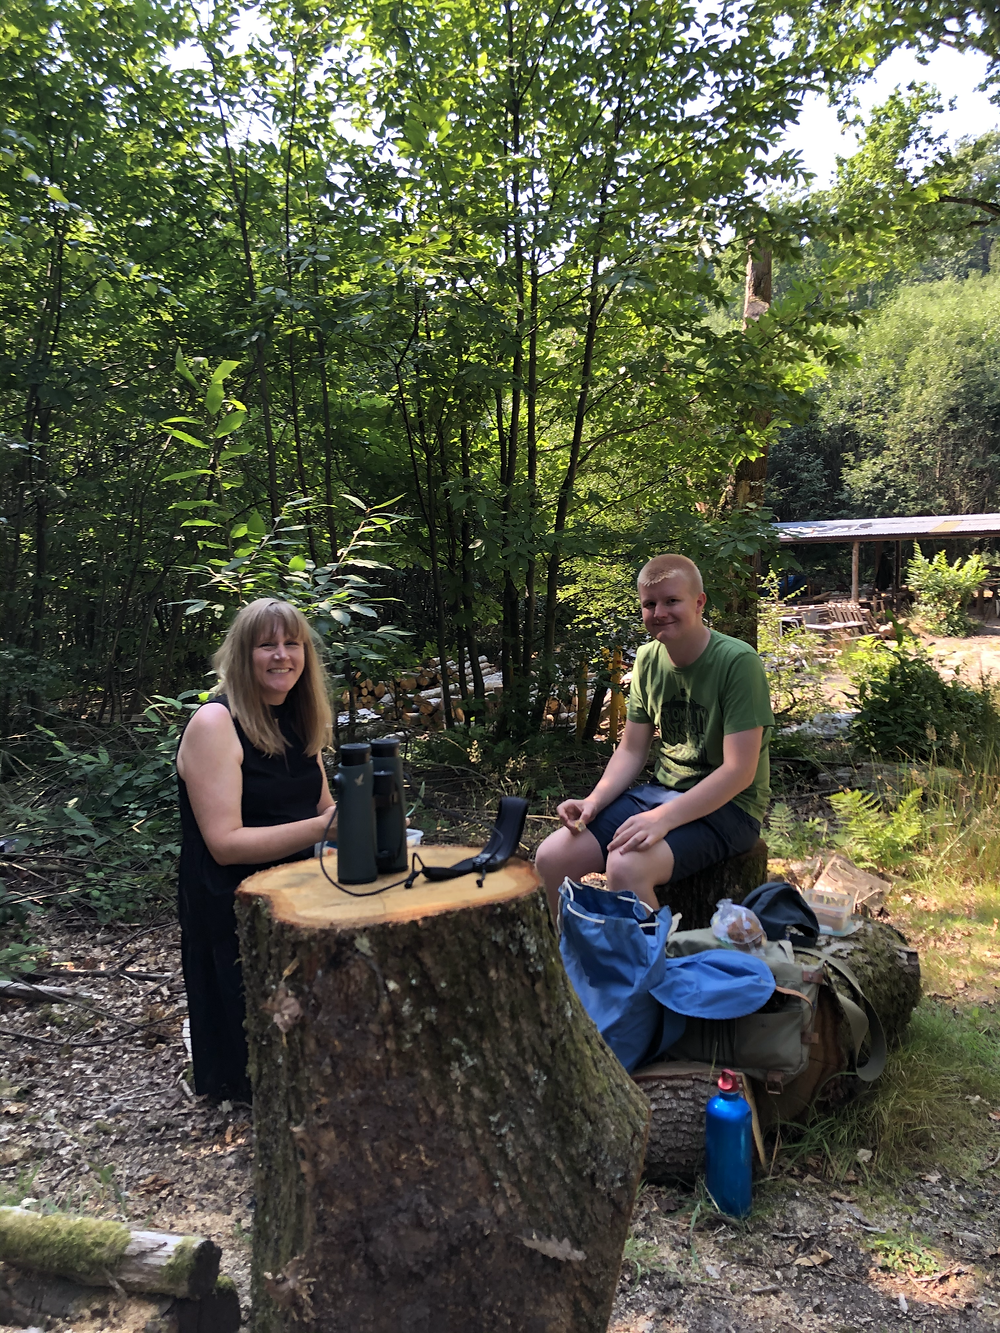 Eating lunch outdoors in a coppiced chestnut woodland